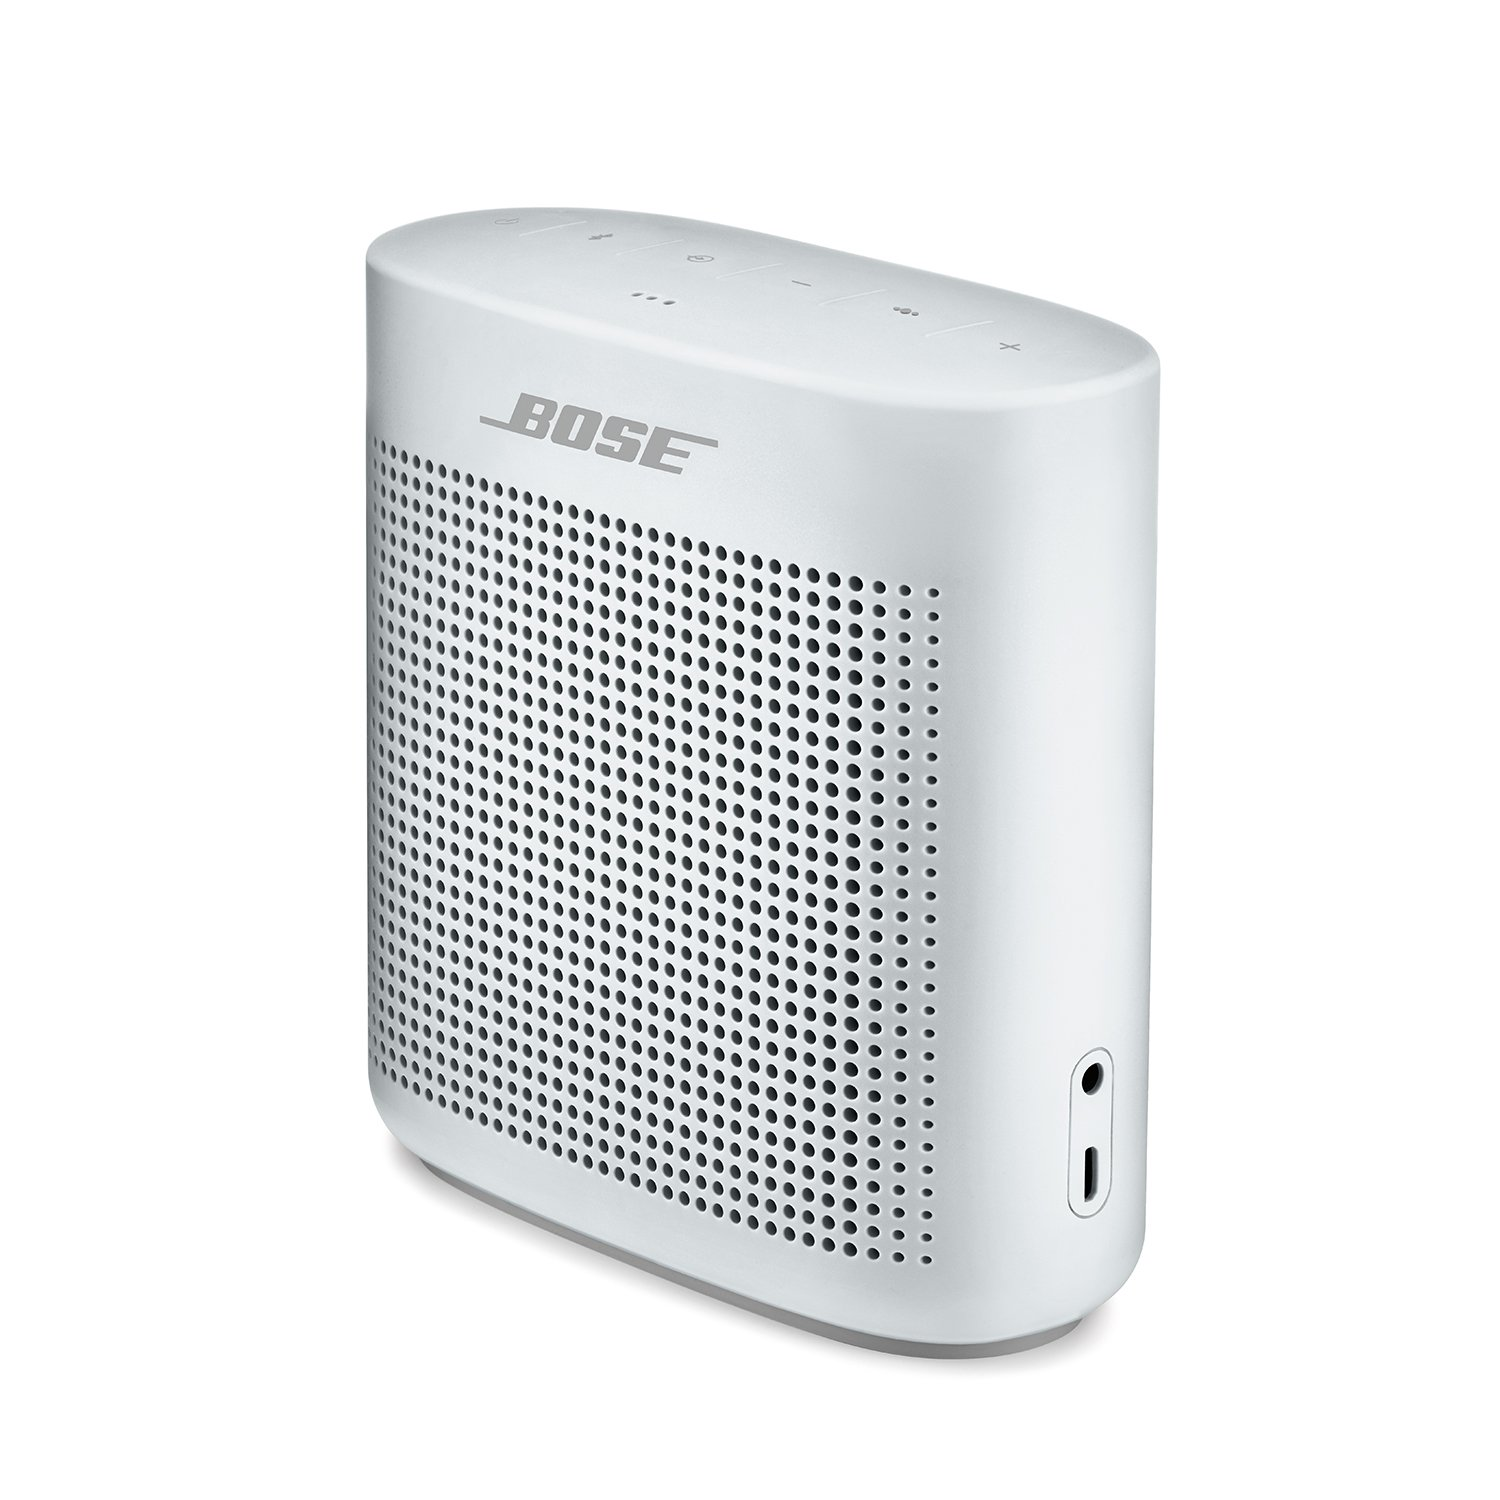 Bose SoundLink Color Bluetooth Speaker II - Polar White by Bose (Image #2)